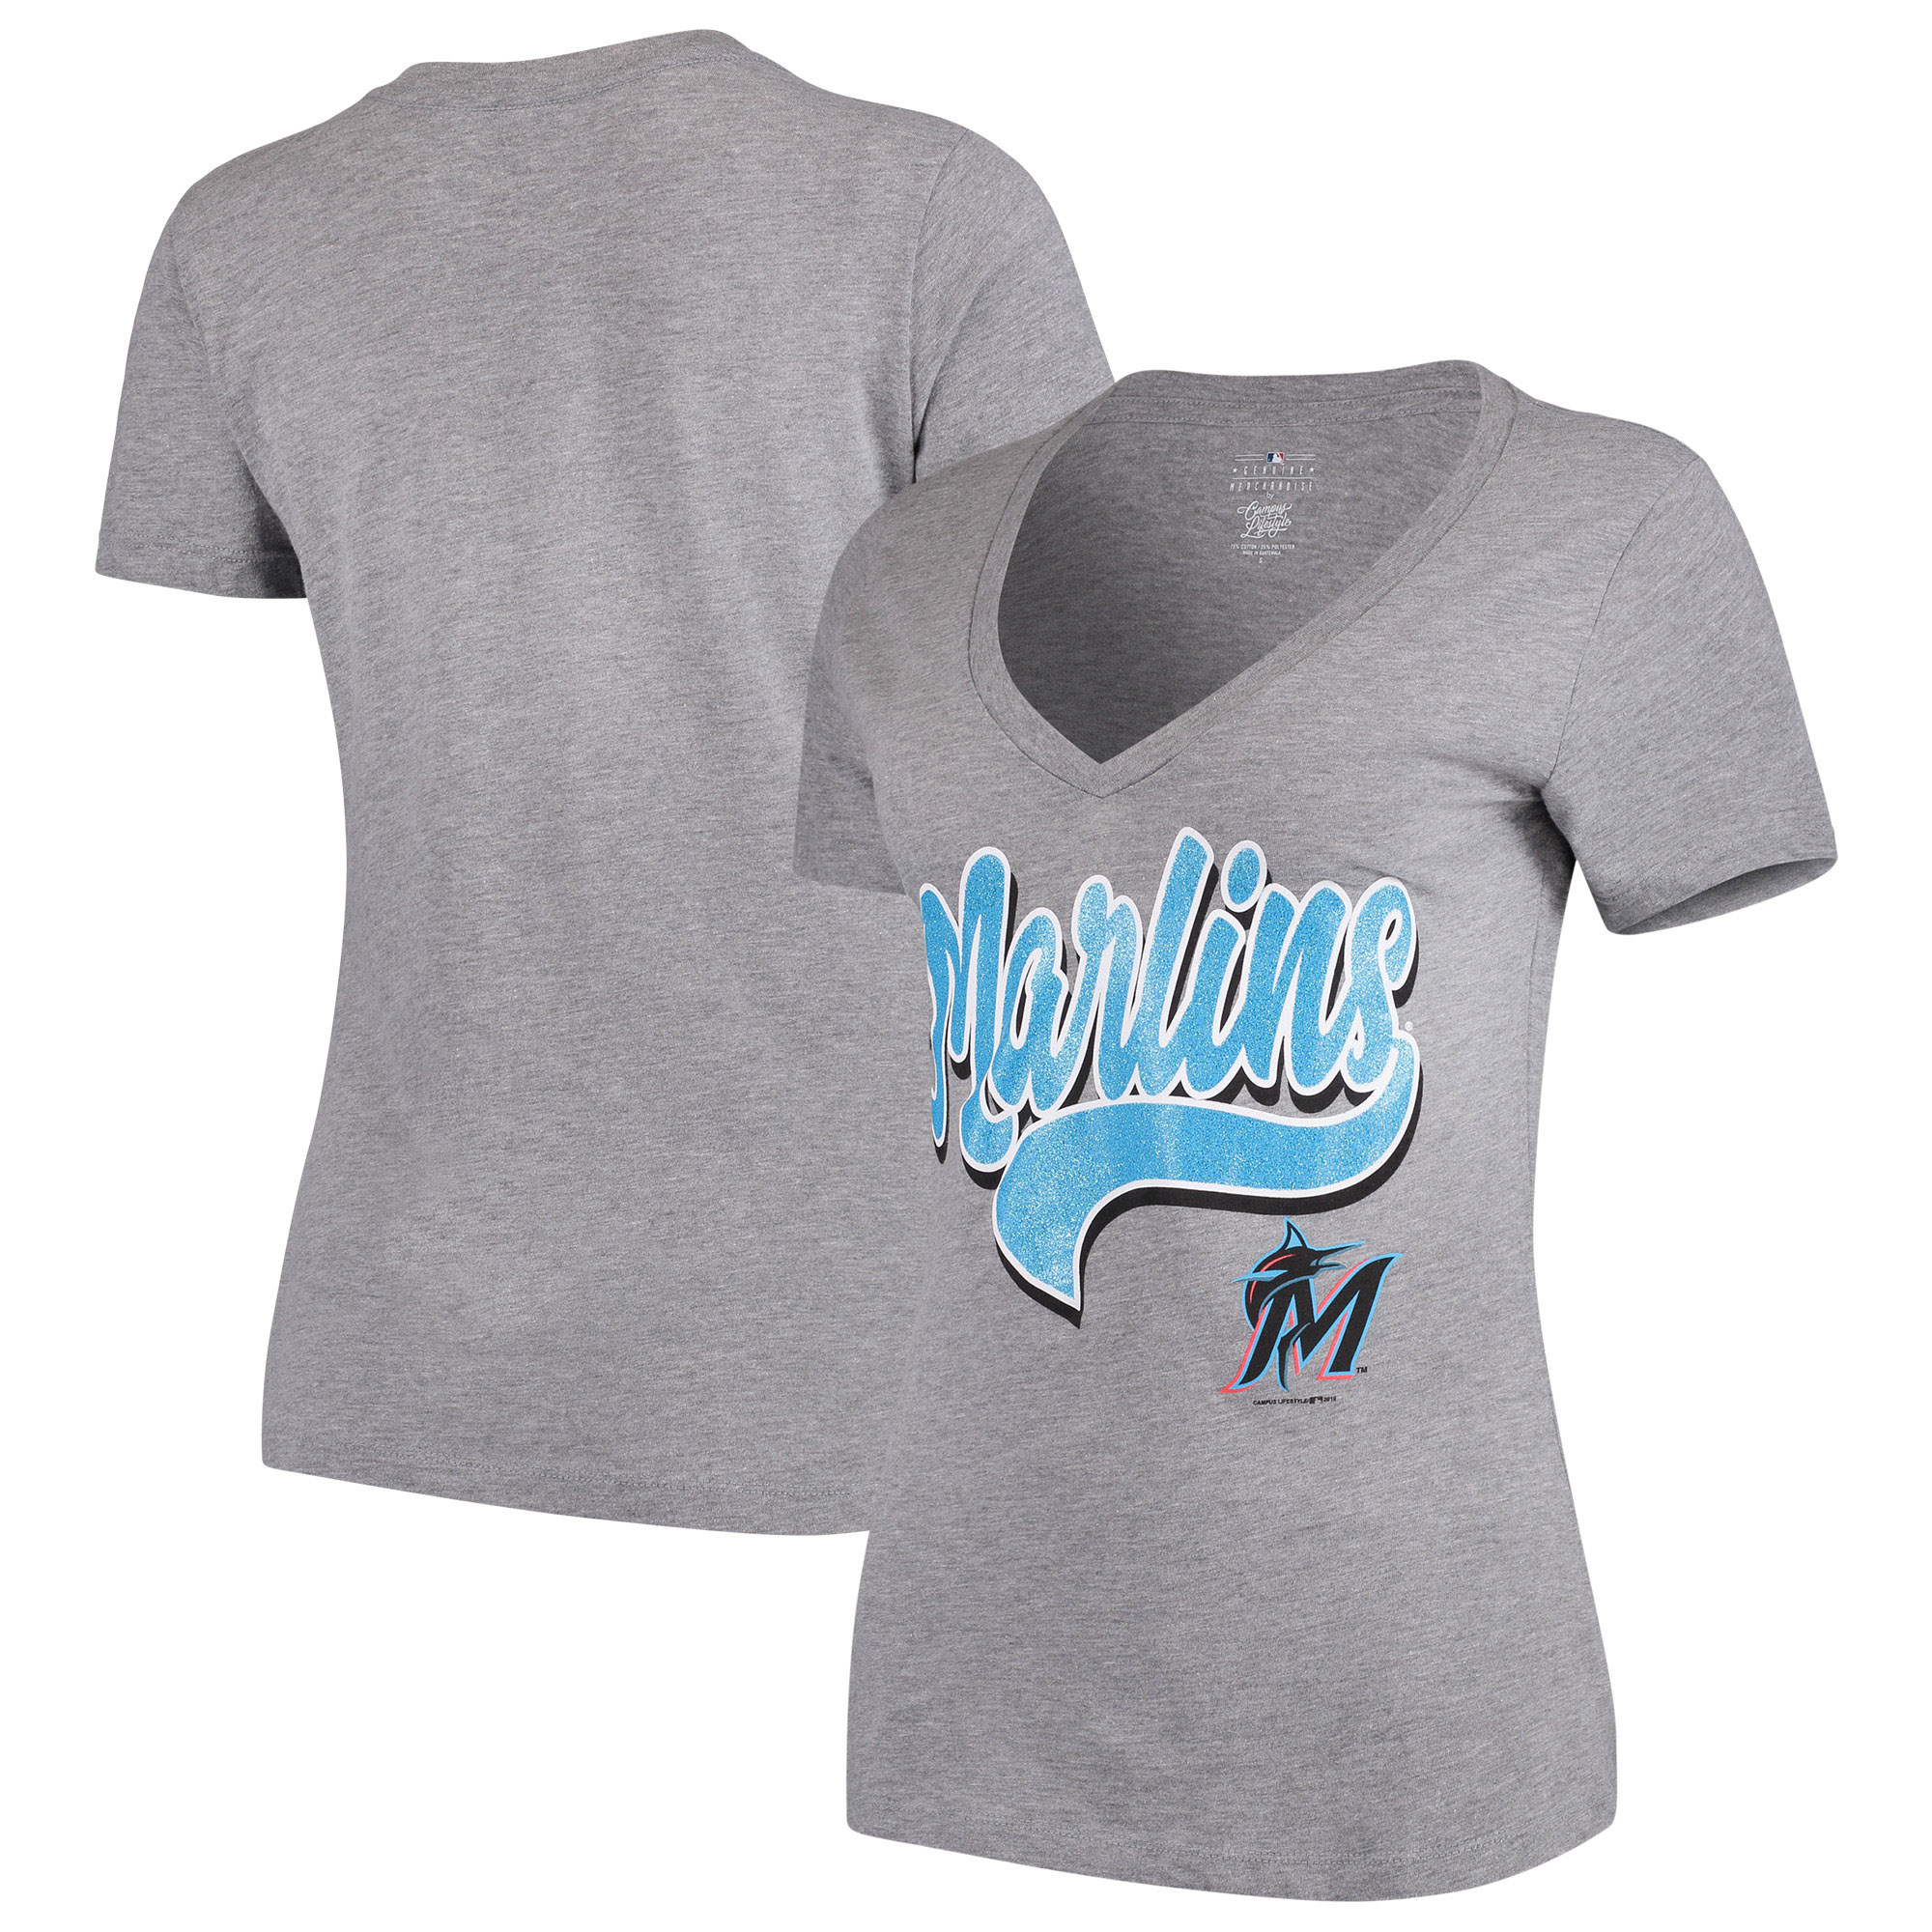 Women's 5th & Ocean by New Era Heathered Gray Miami Marlins Team V-Neck T-Shirt